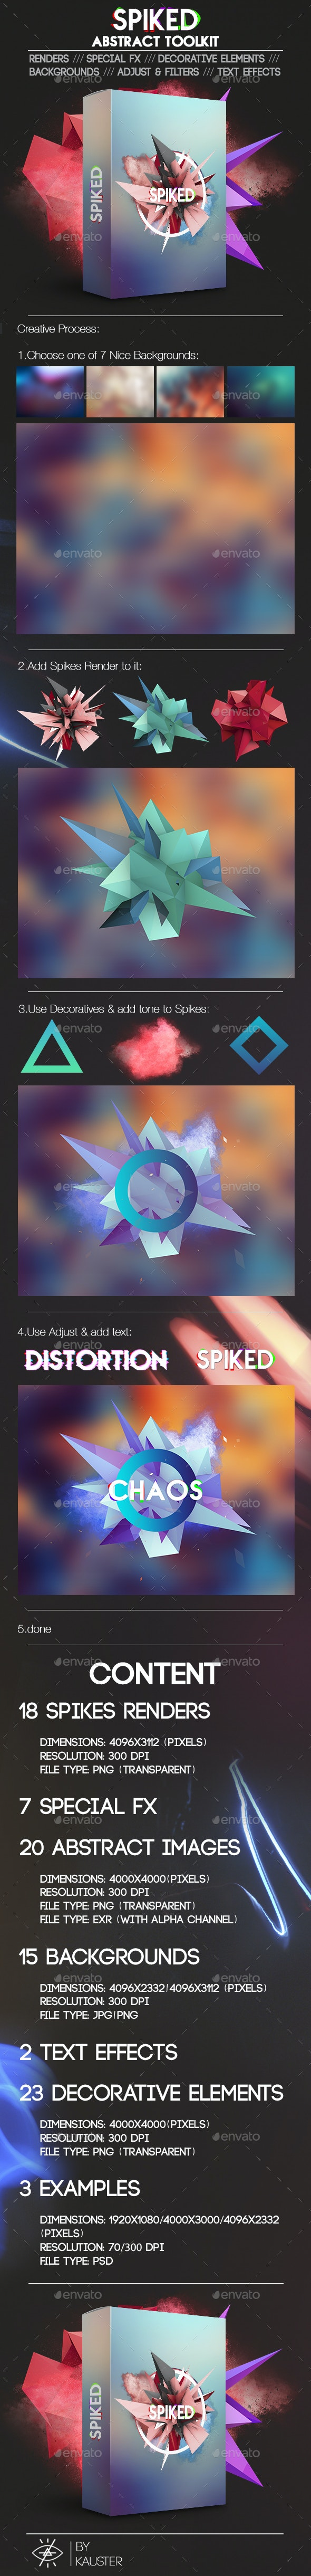 Spiked - Decorative Graphics